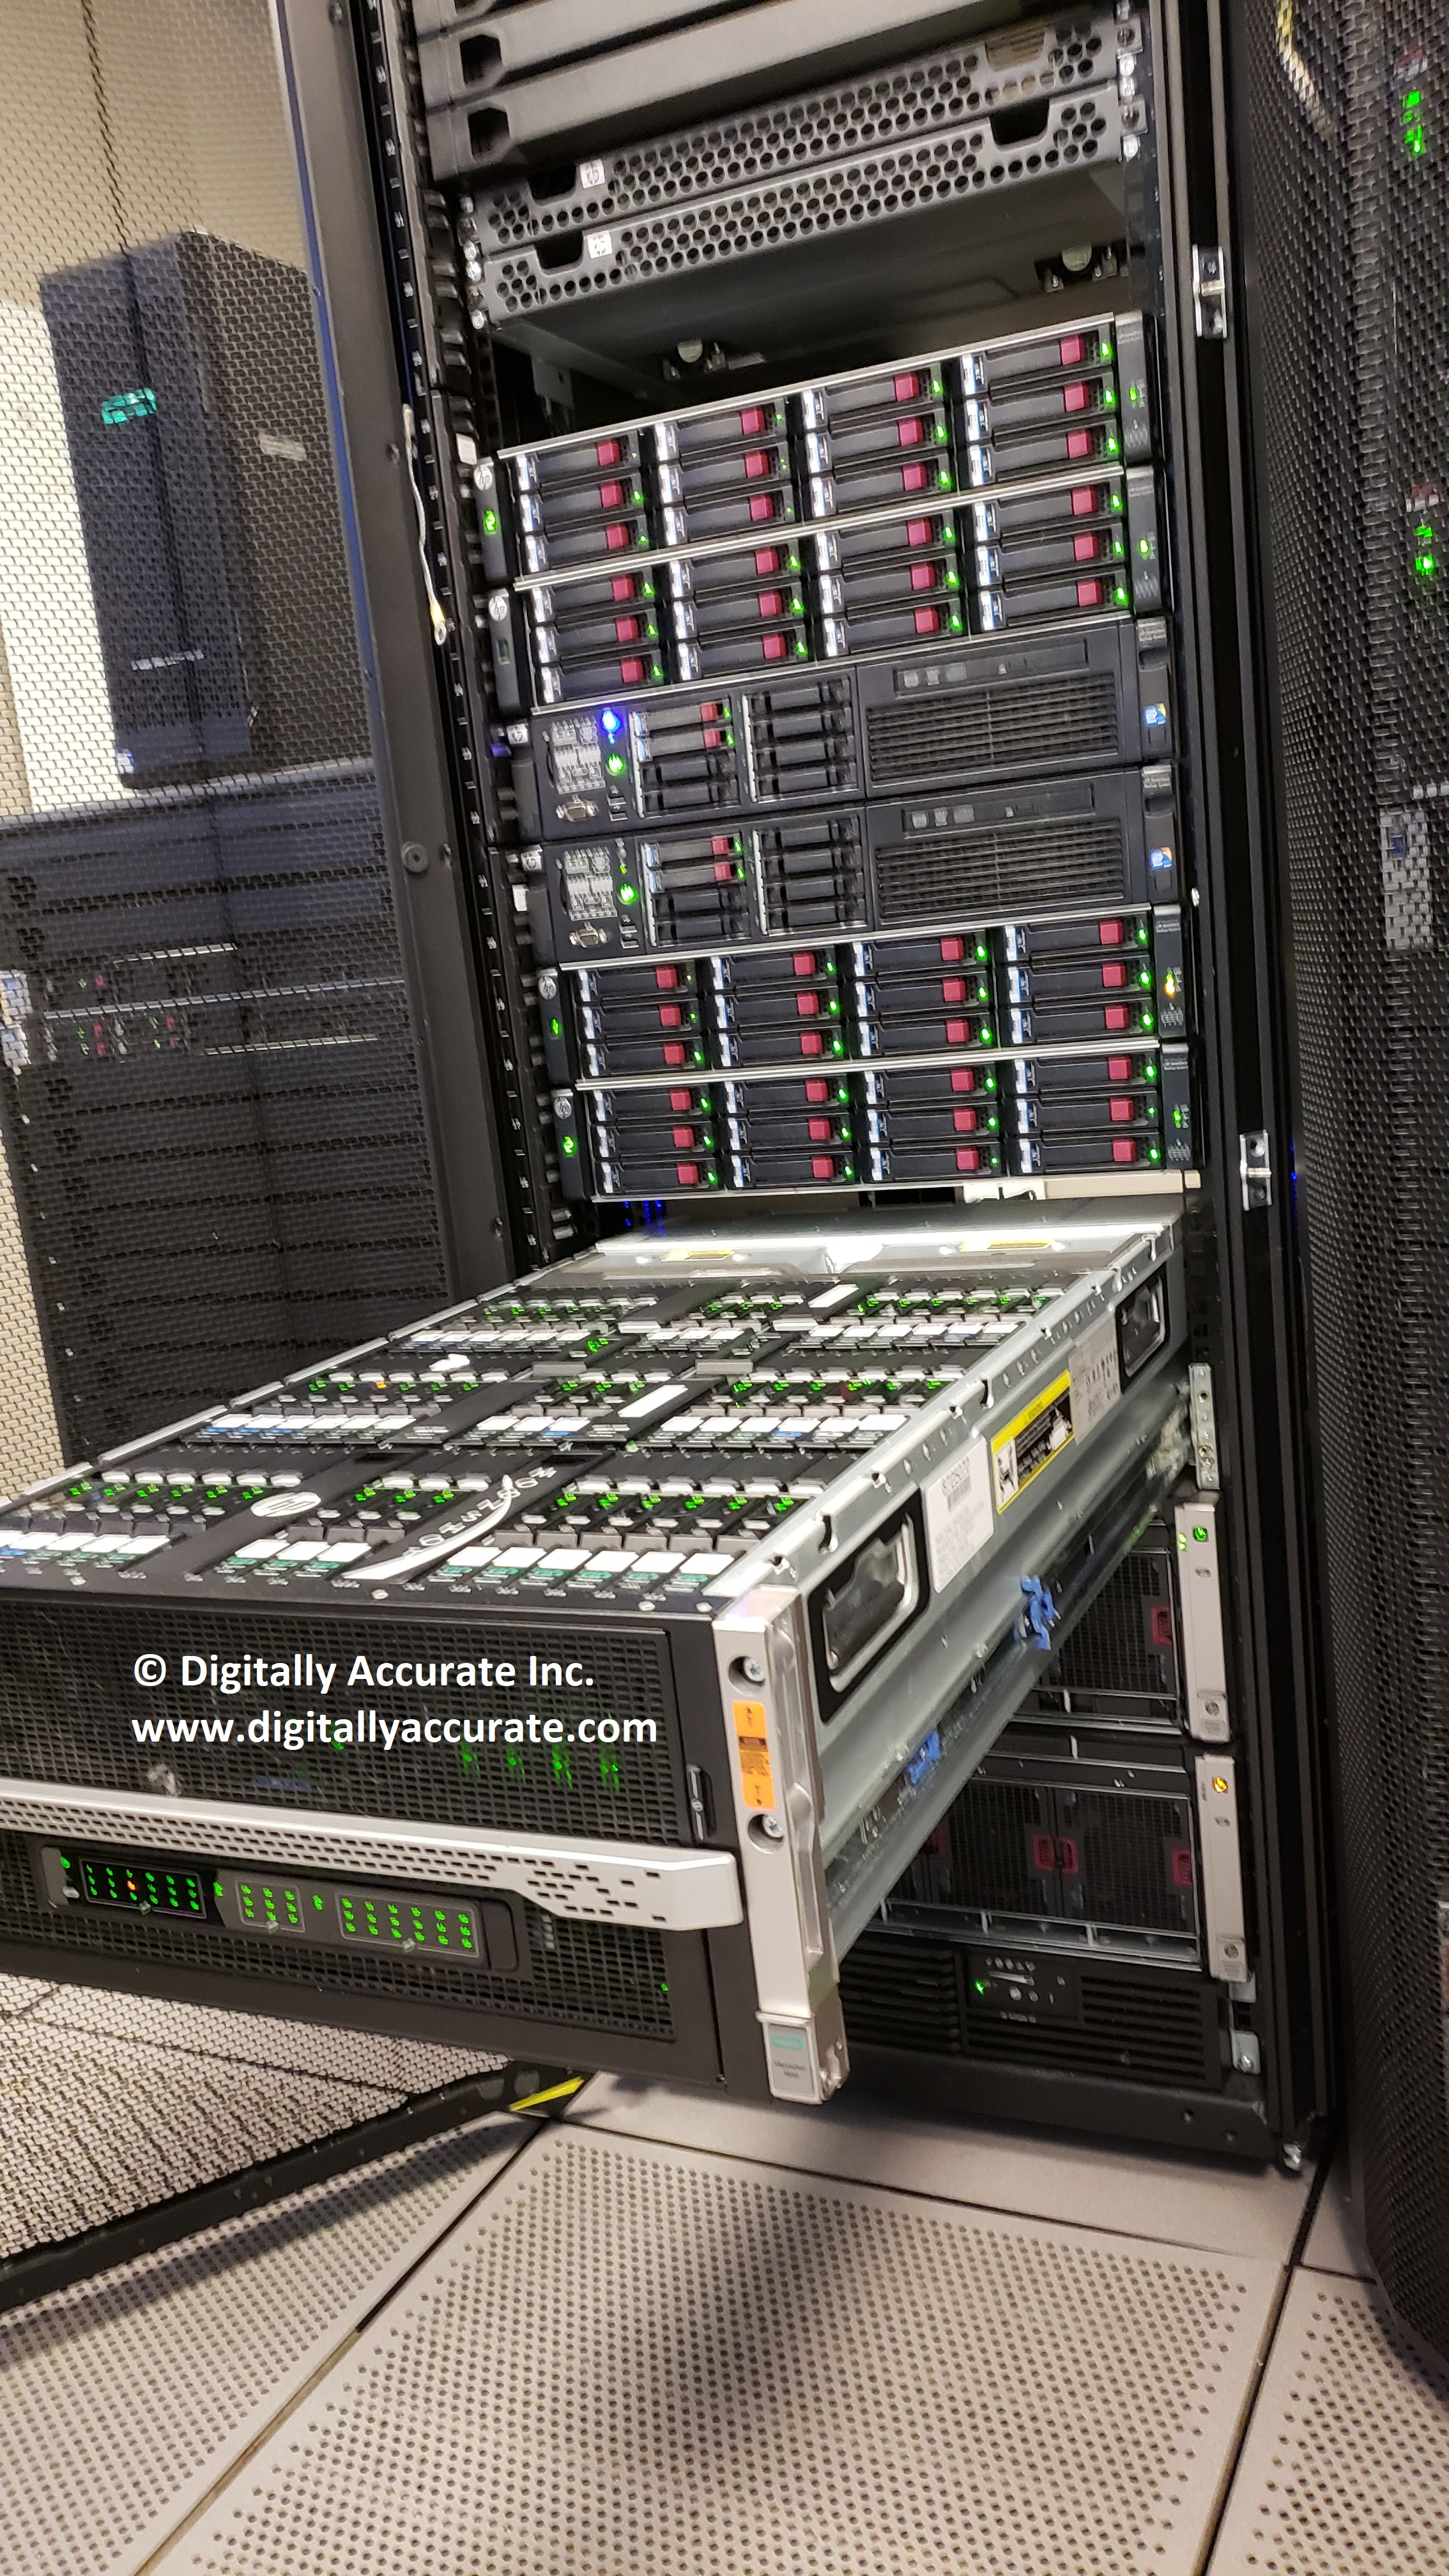 HPe Moonshot - The absolute definition of high-density